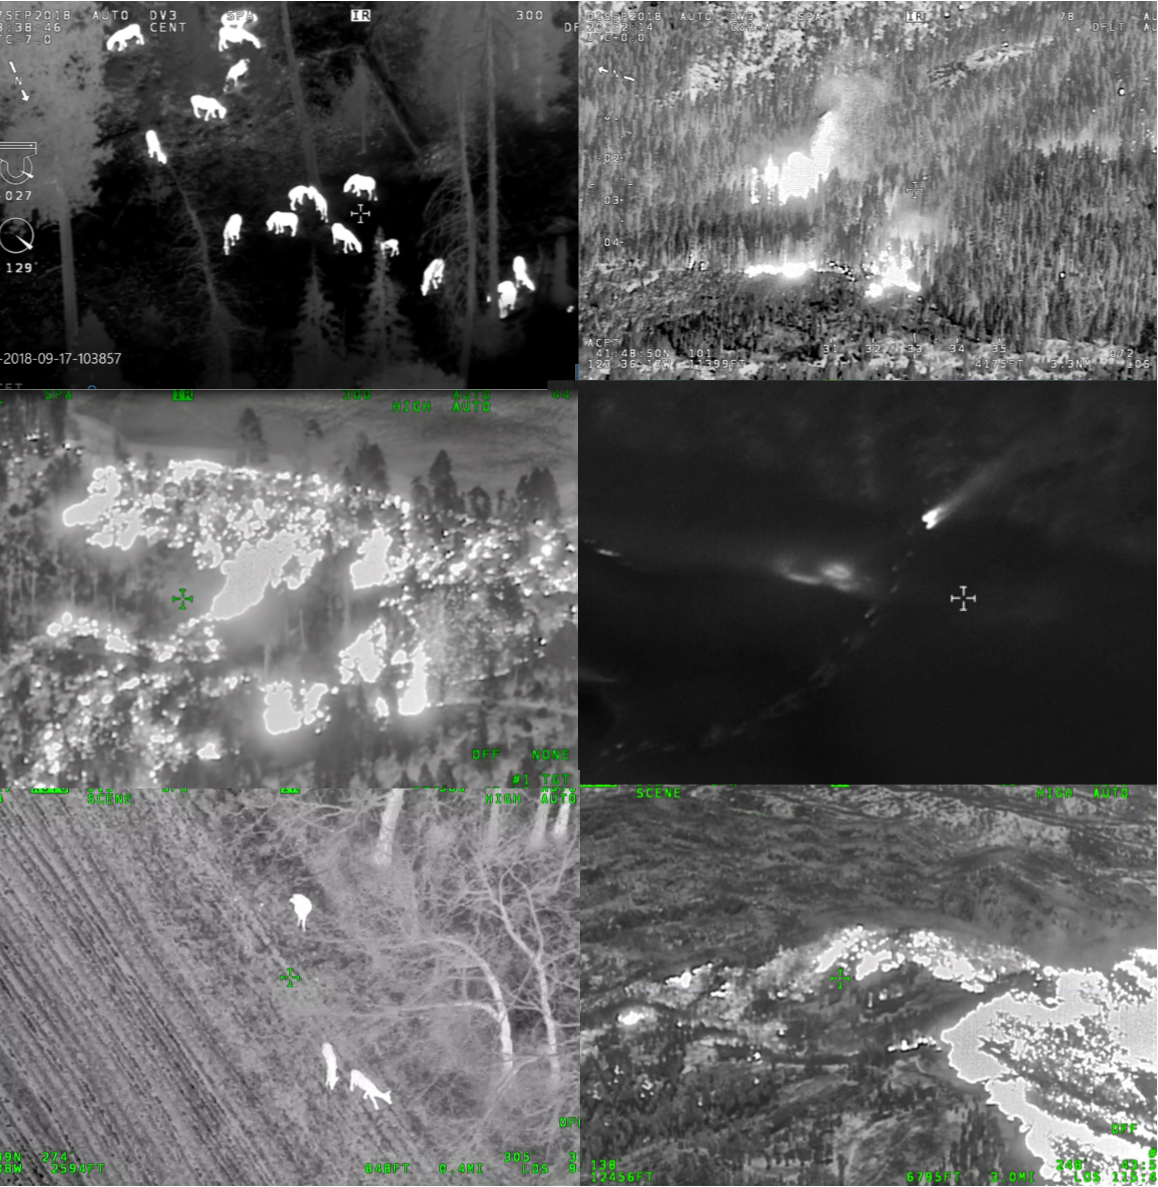 Aerial Infrared (AIR) - OAR is at the forefront of the use of aerial infrared (AIR) technology in wildlife/wildfire and other natural resource surveys.We offer a military-grade AIR and visible-spectrum video imaging system that allows us to detect and identify heat sources accurately from safe altitudes. Currently, this is the only cooled-AIR and visible-spectrum system of it's level in the country, that is available for use in wildlife and wildfire surveying.